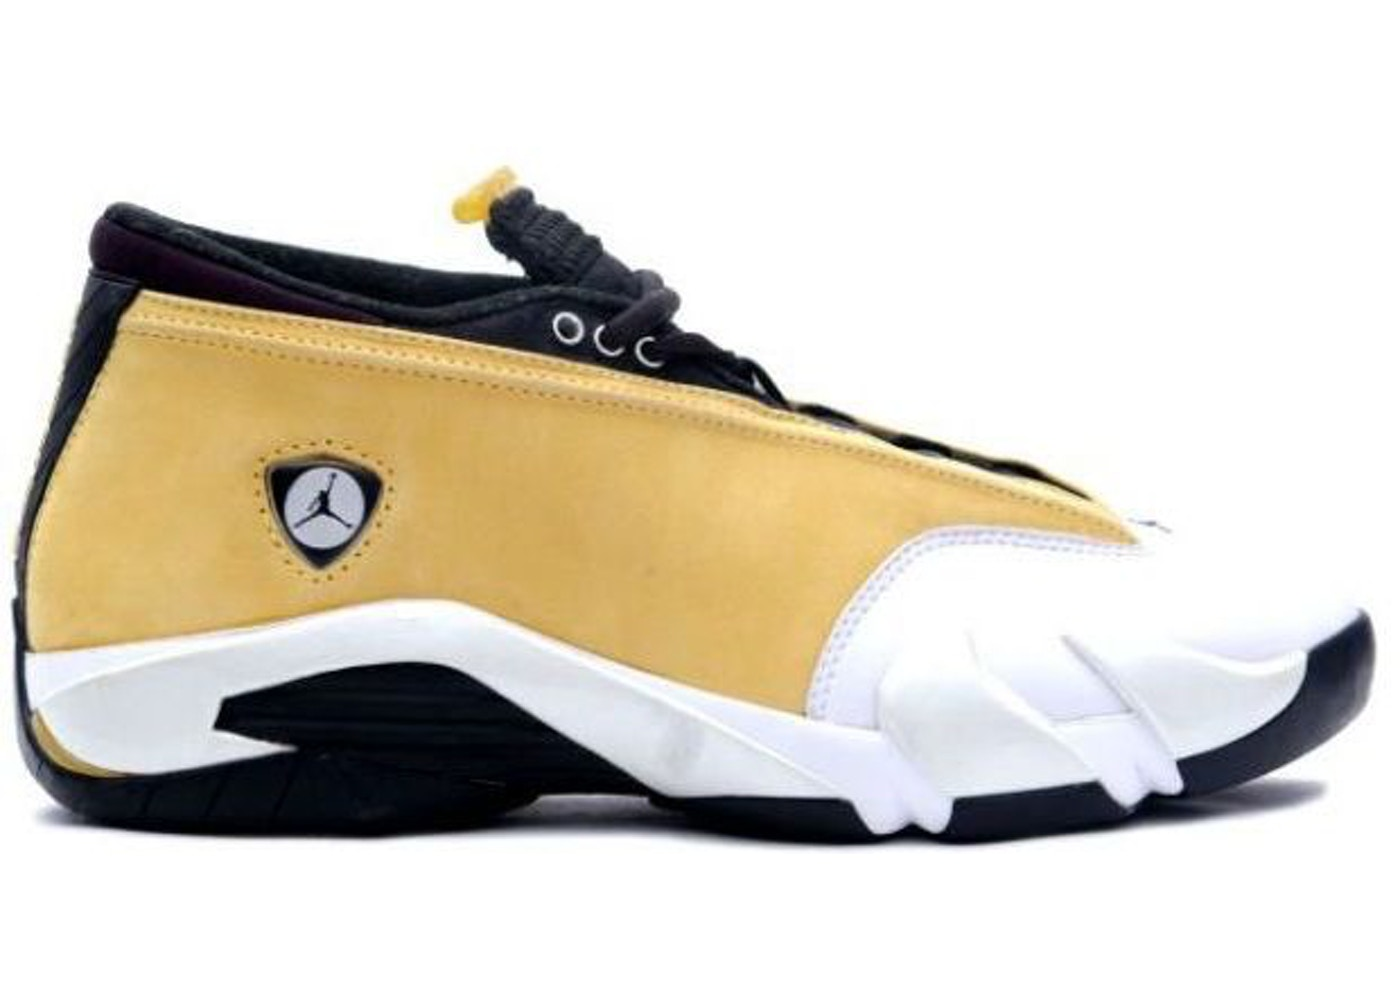 Buy Air Jordan 14 Size 15 Shoes   Deadstock Sneakers aff632eea